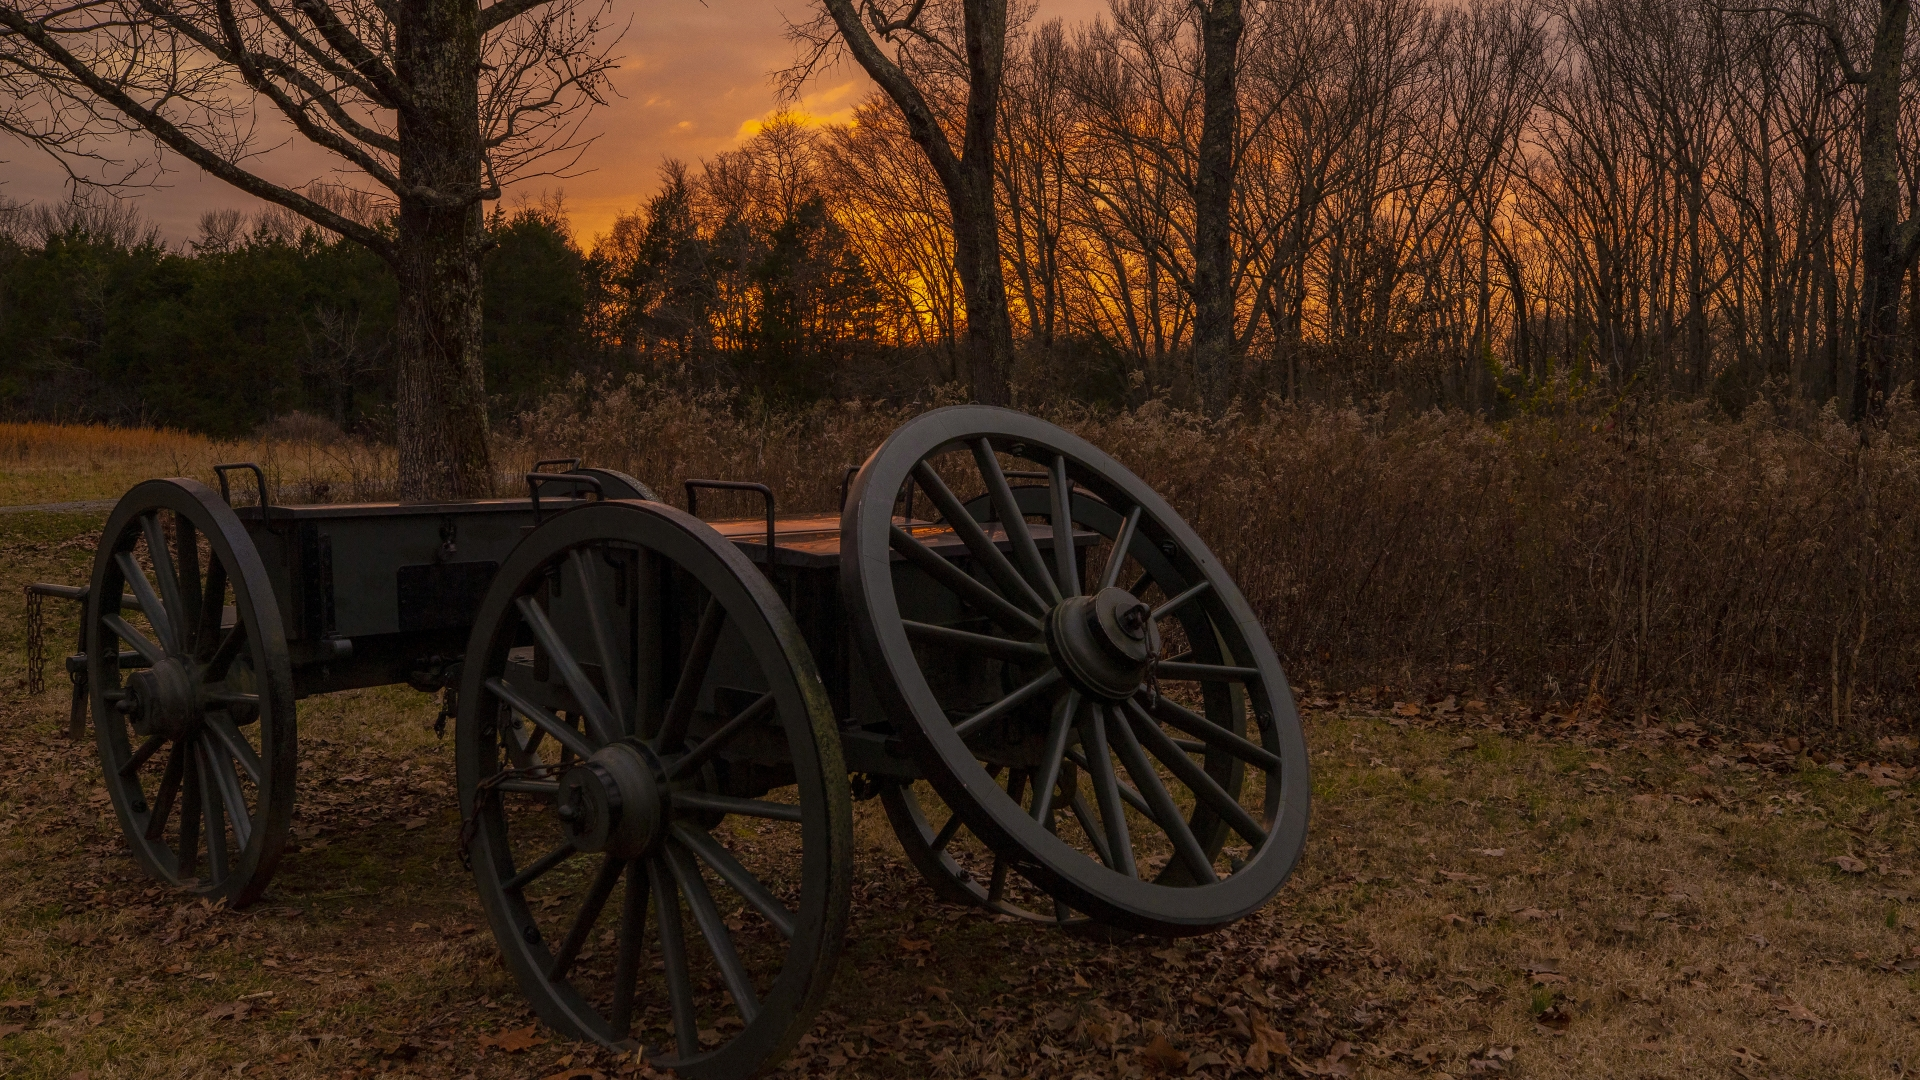 A old cannon on a battlefield at dusk